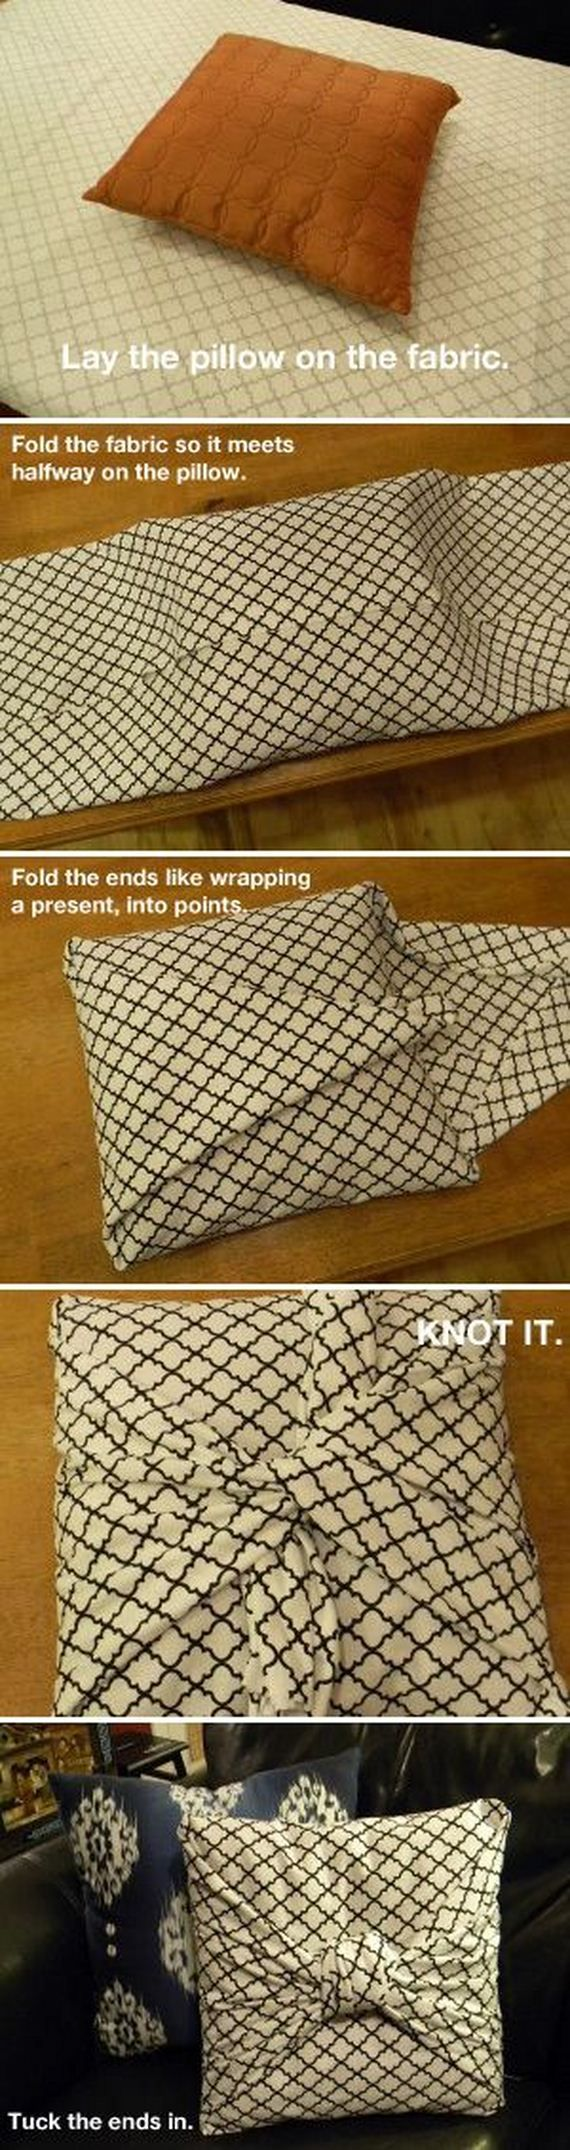 no sew pillow cover, doing this after I get my new slipcovers